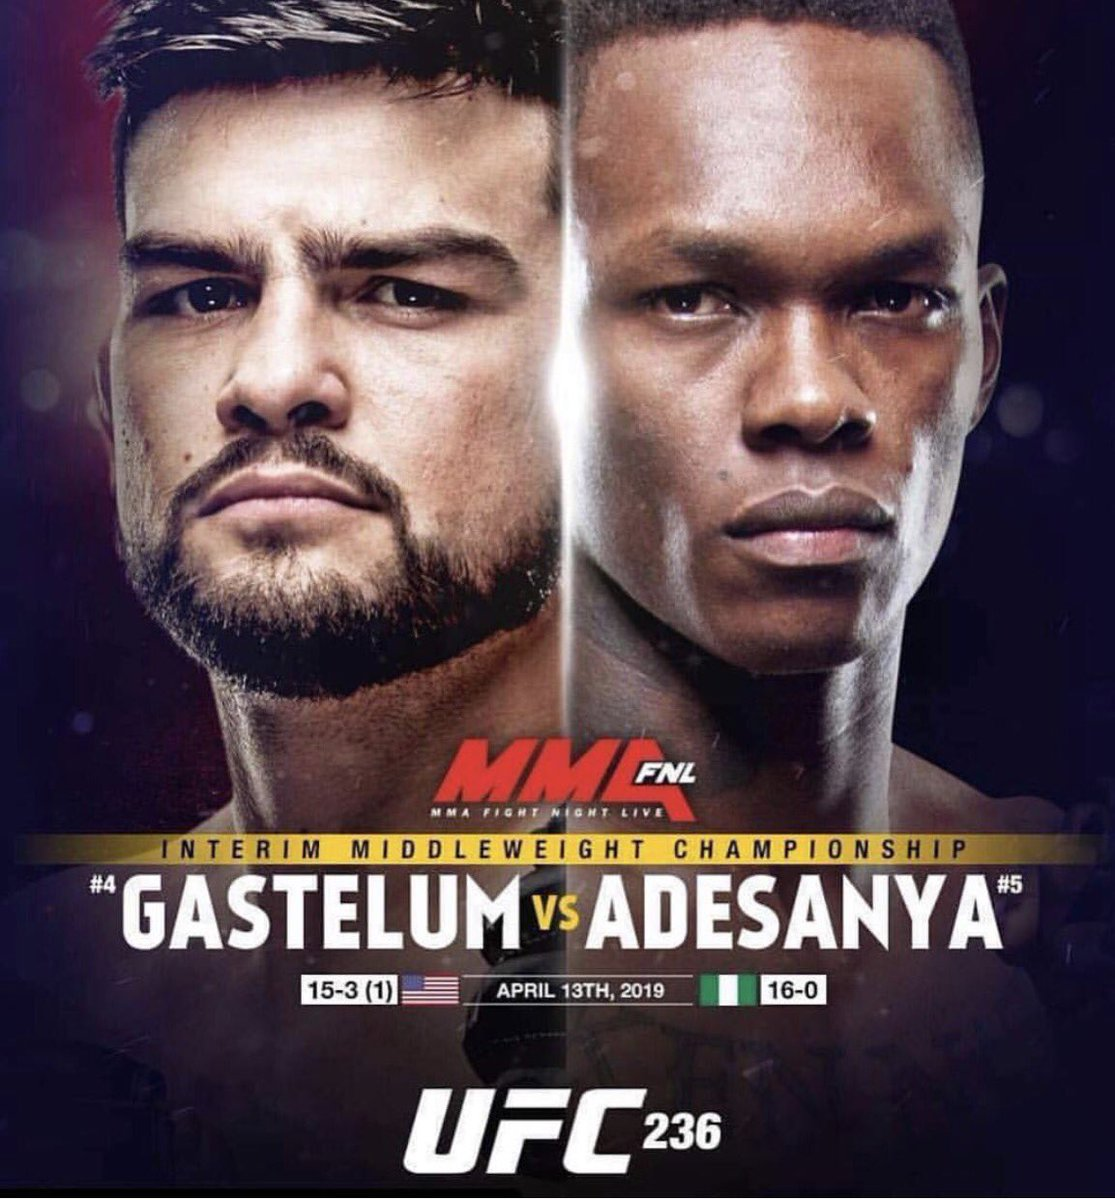 Let's go CHAMP! 😬😬😬 #UFC236